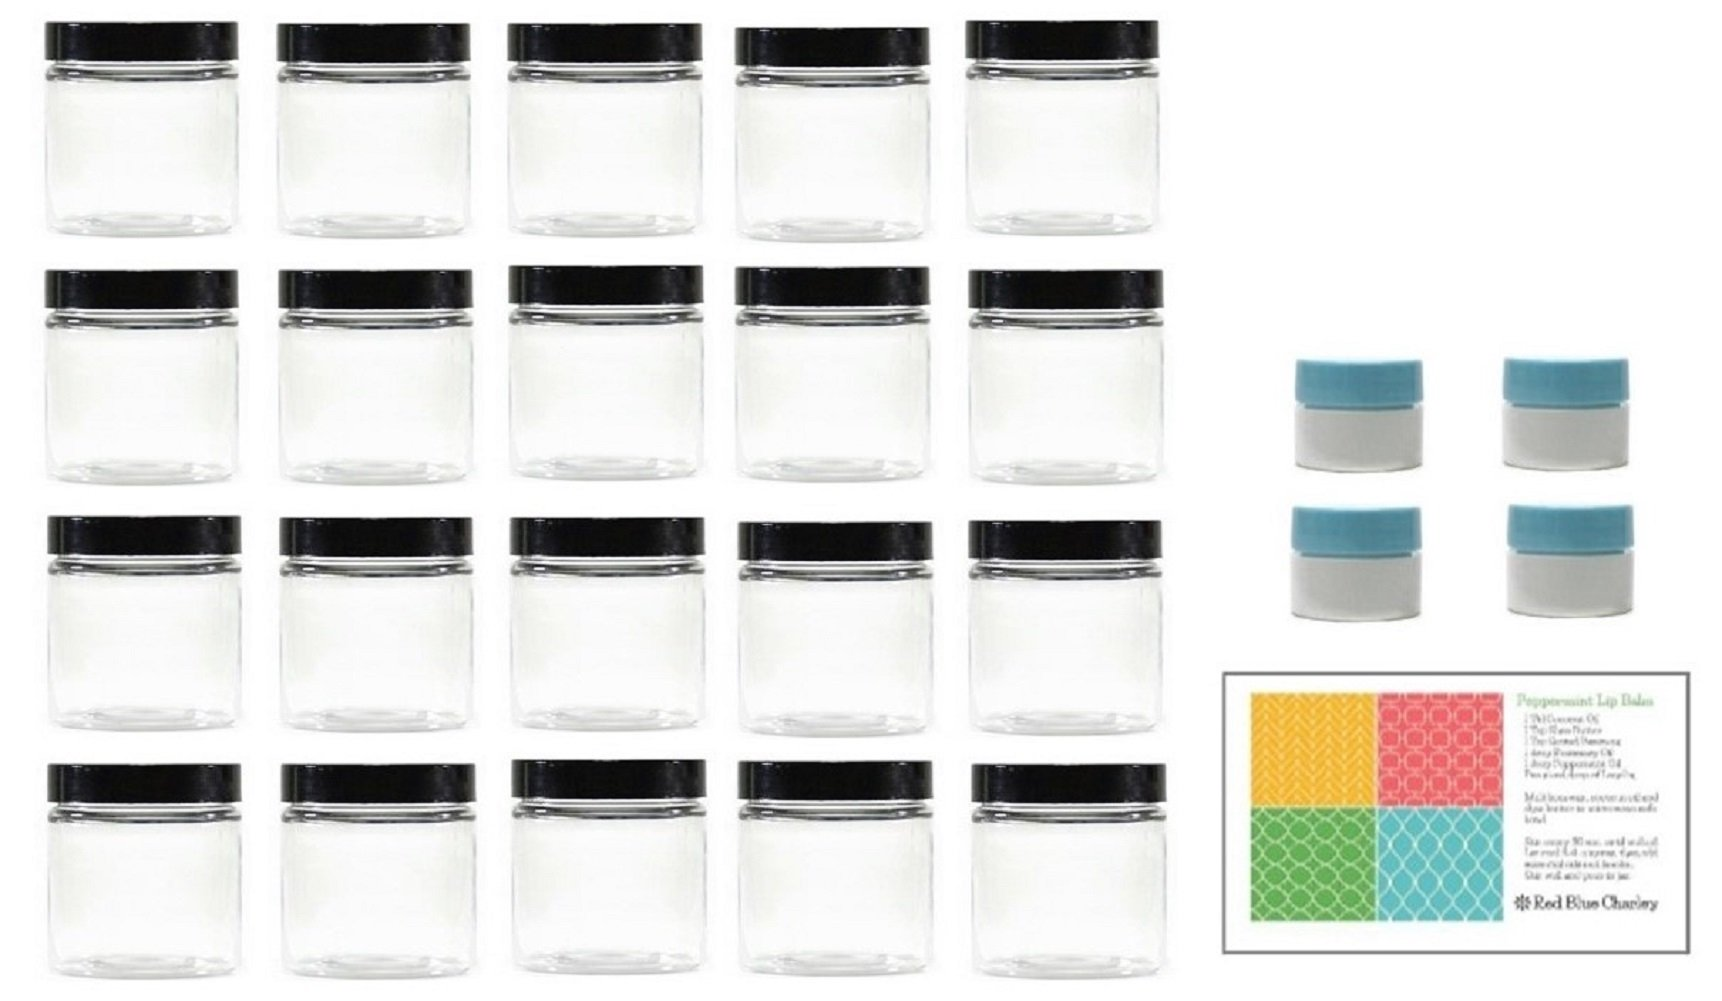 Clear 8 oz Plastic Jars with Black Lids (40 pk) with Mini Jars - PET Round Refillable Containers